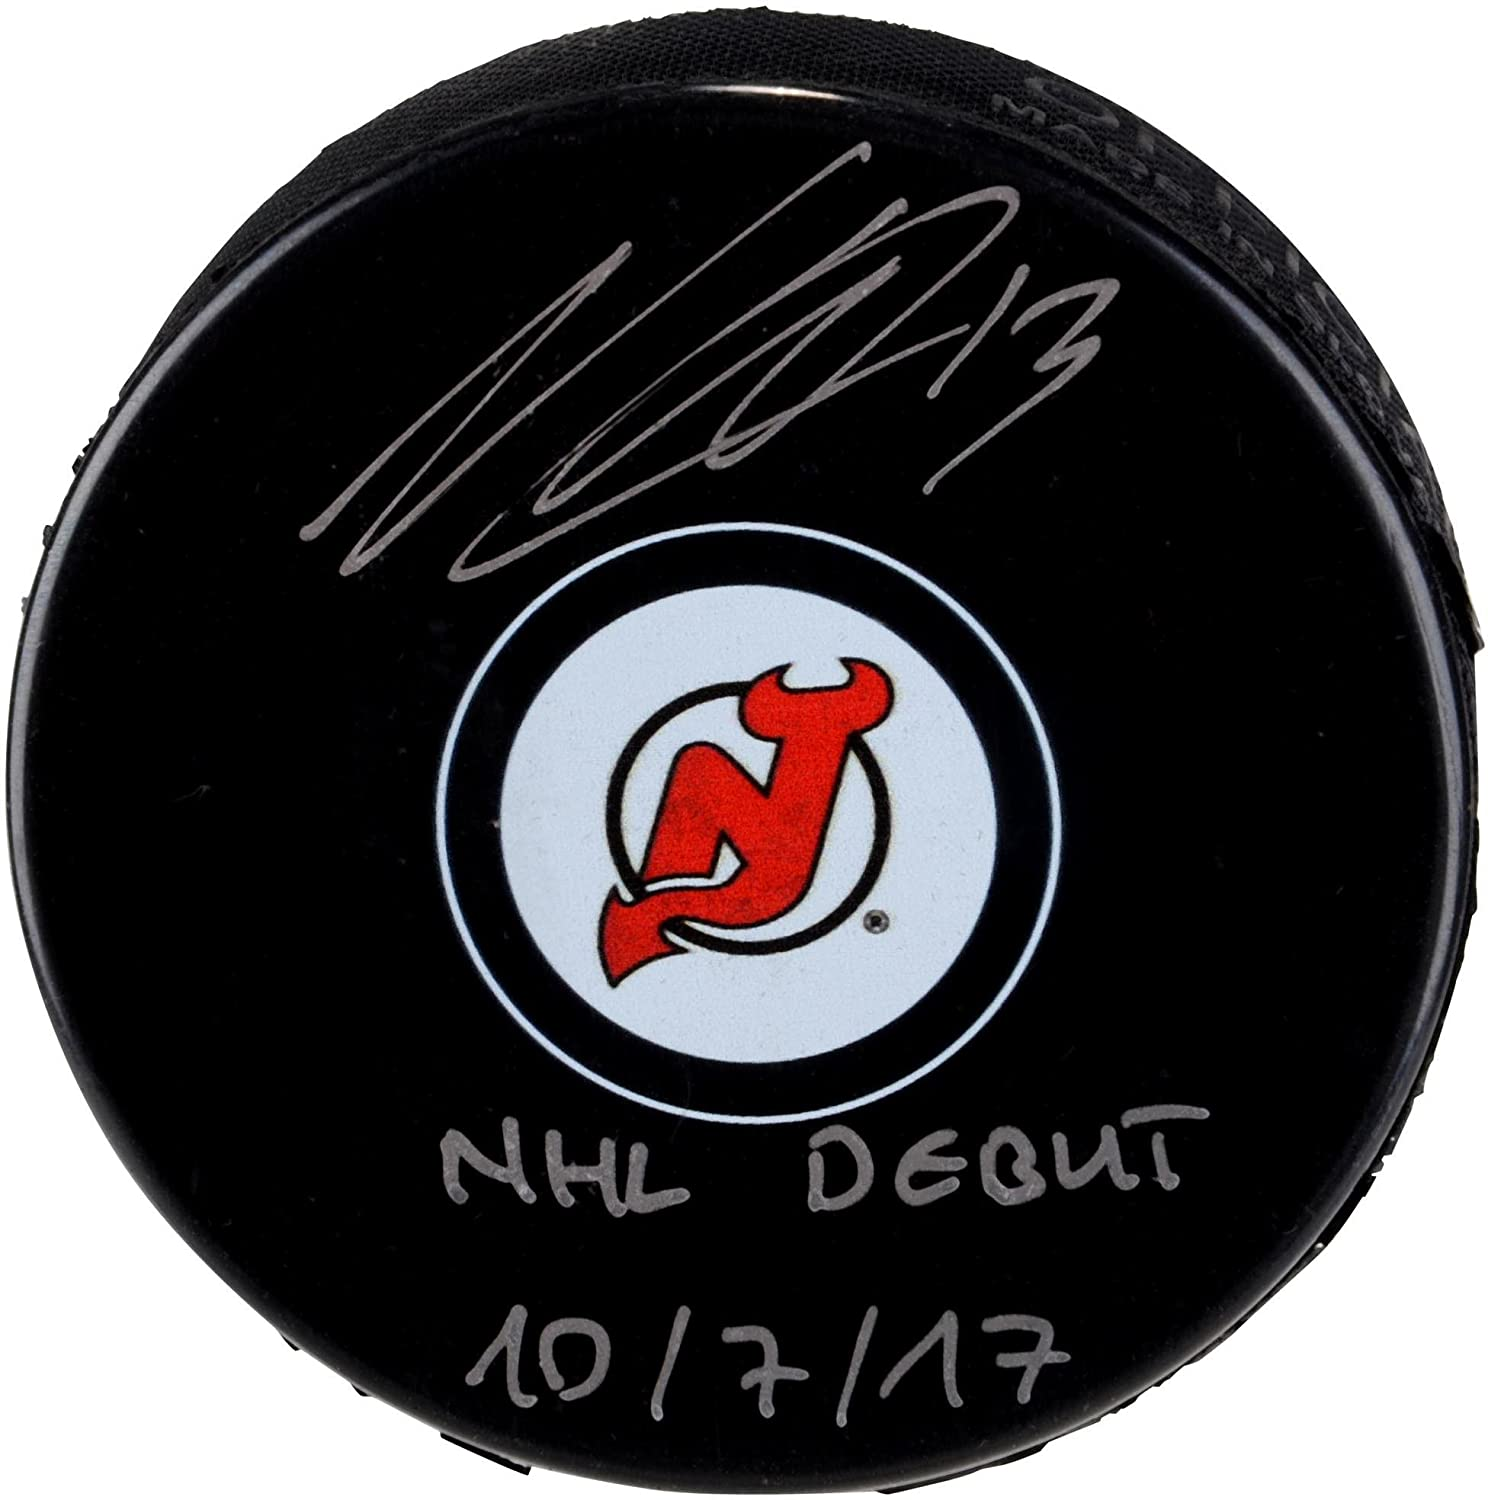 Nico Hischier New Jersey Devils Autographed Hockey Puck with NHL Debut 10/7/17 Inscription - Fanatics Authentic Certified